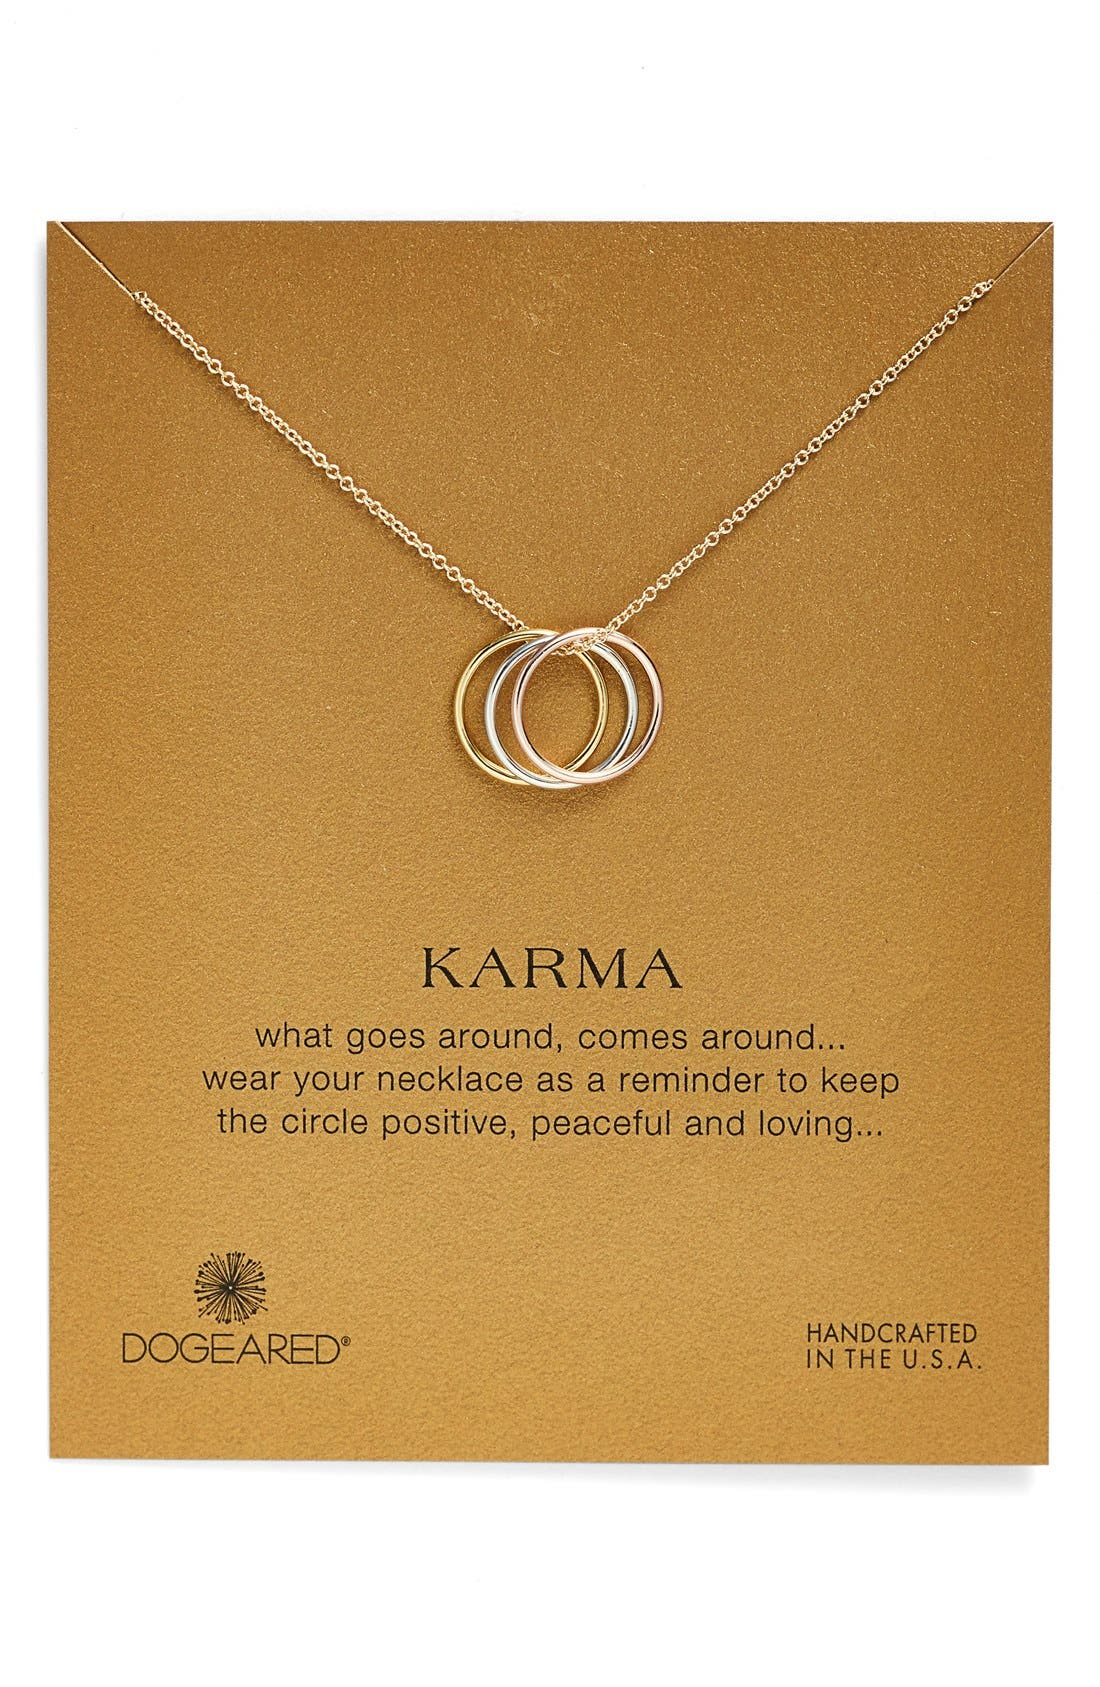 Alternate Image 1 Selected - Dogeared 'Karma' Charm Necklace